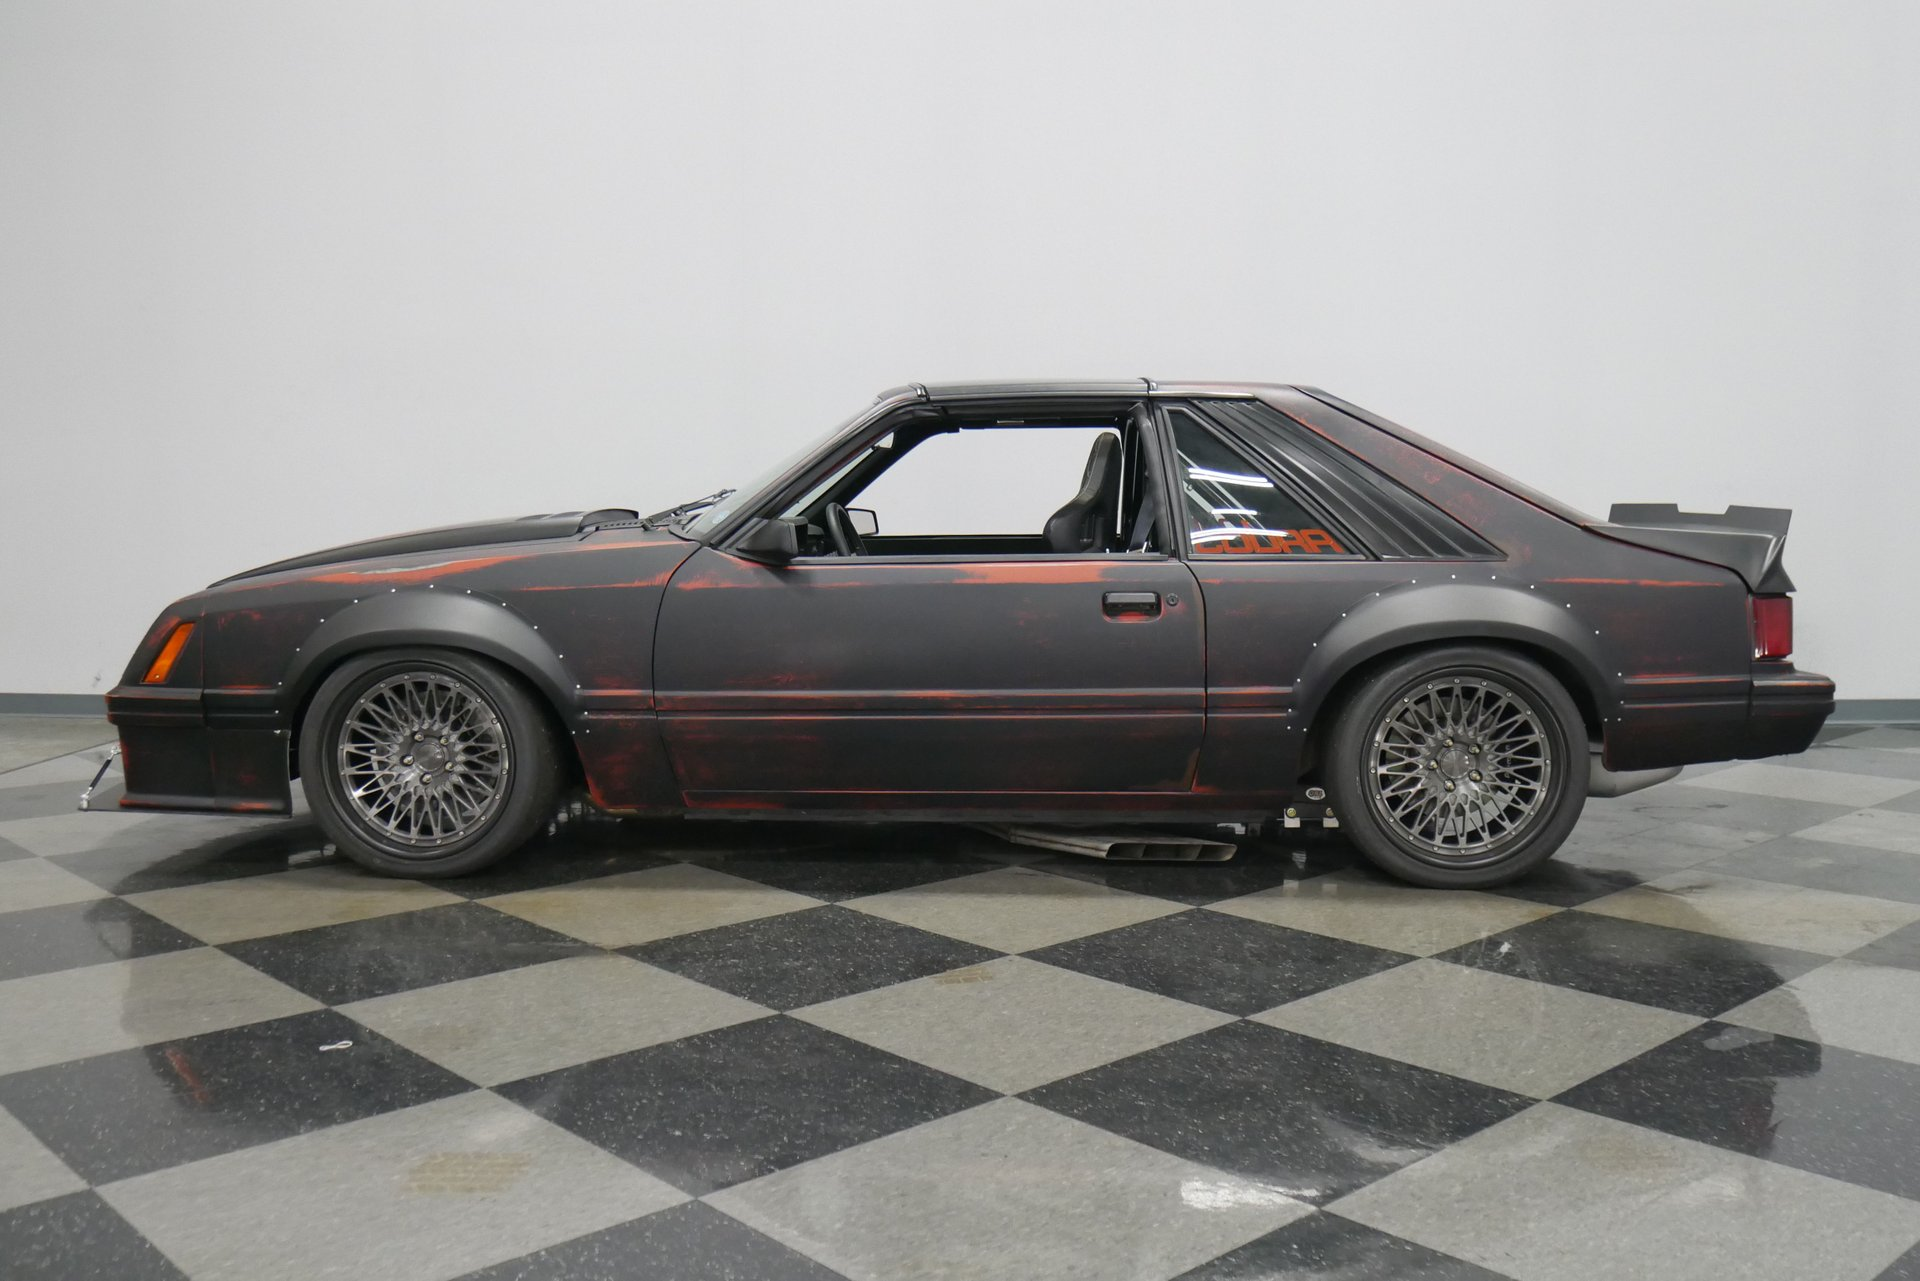 1981 ford mustang cobra project sydewinder